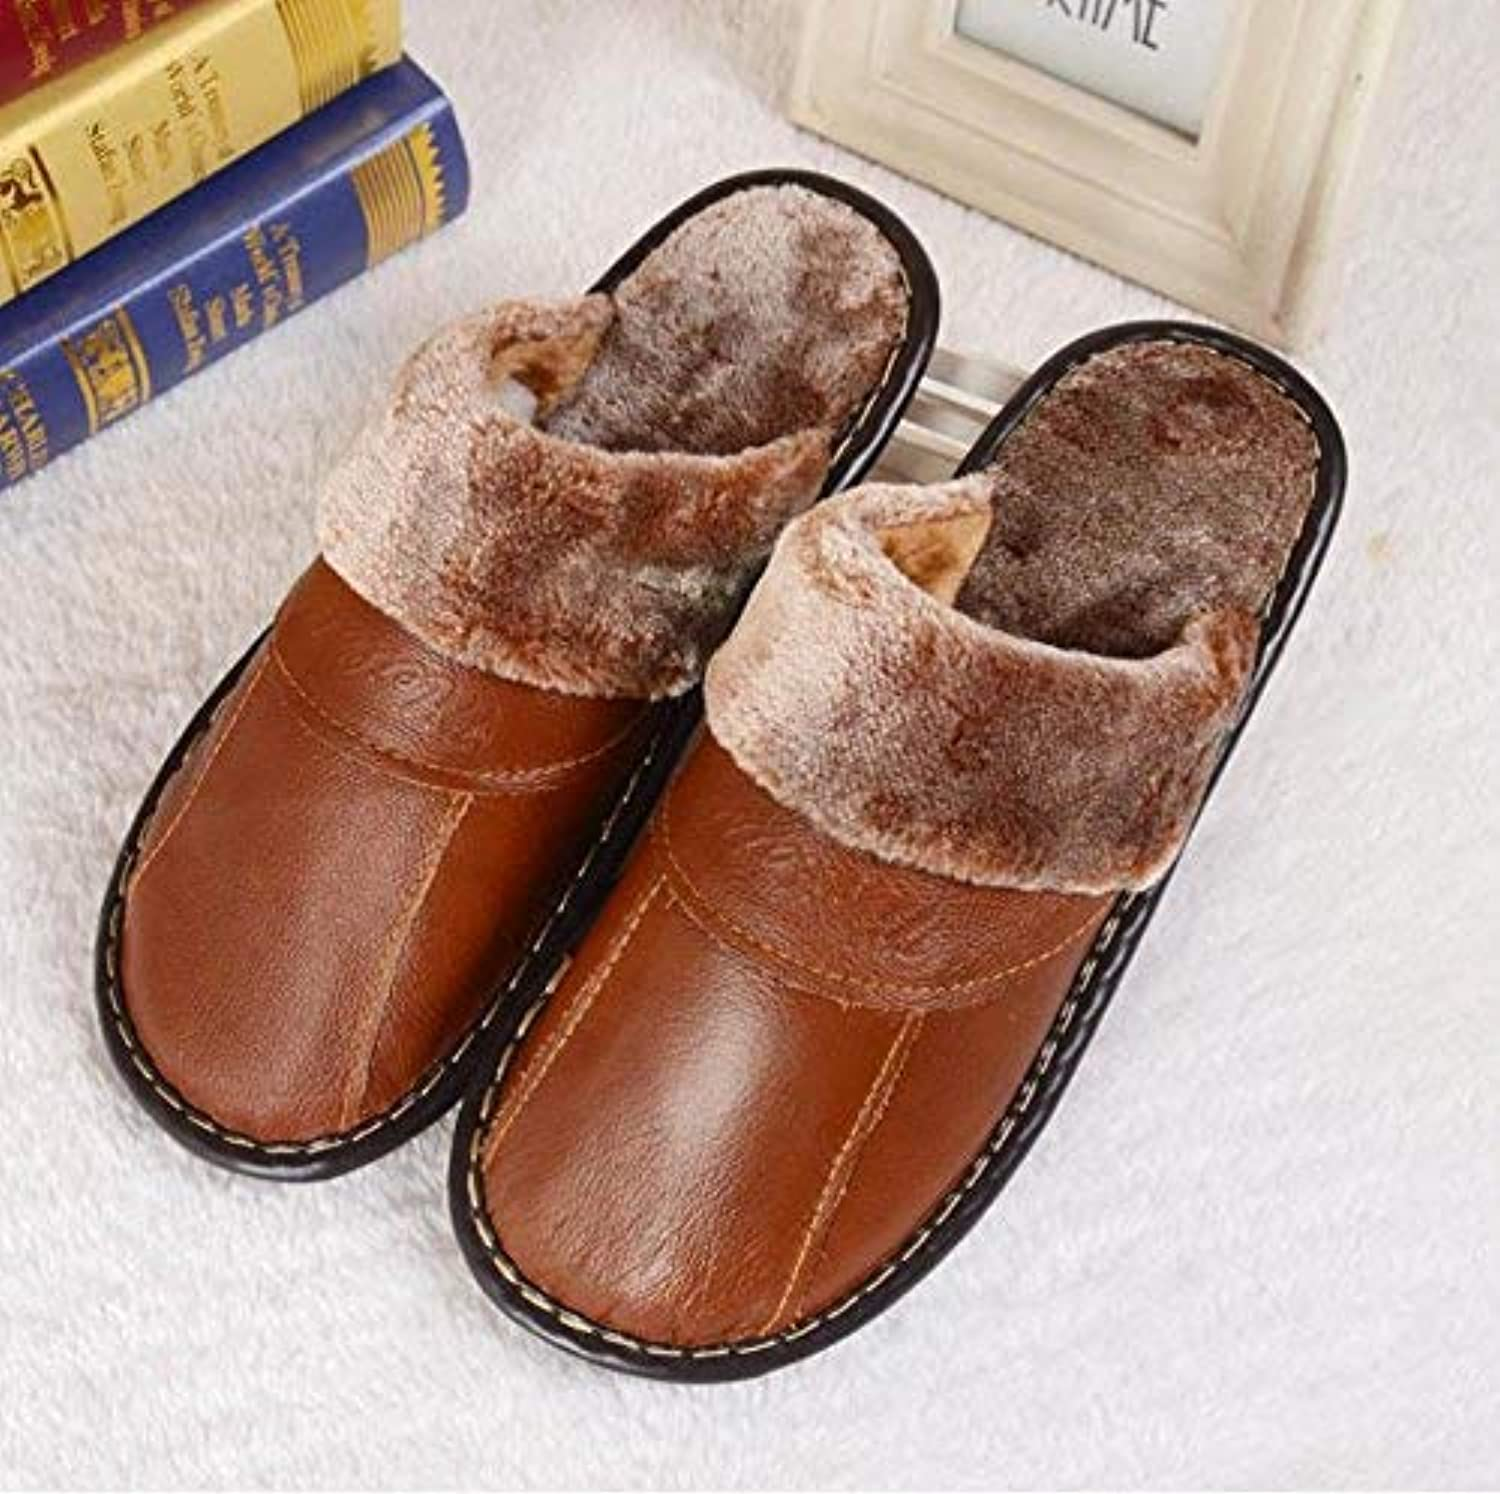 GouuoHi Men Slipper Men's Slippers at Home in Autumn and Winter The Indoor Warm Non Slip Artificial Leather Slippers Black Brown